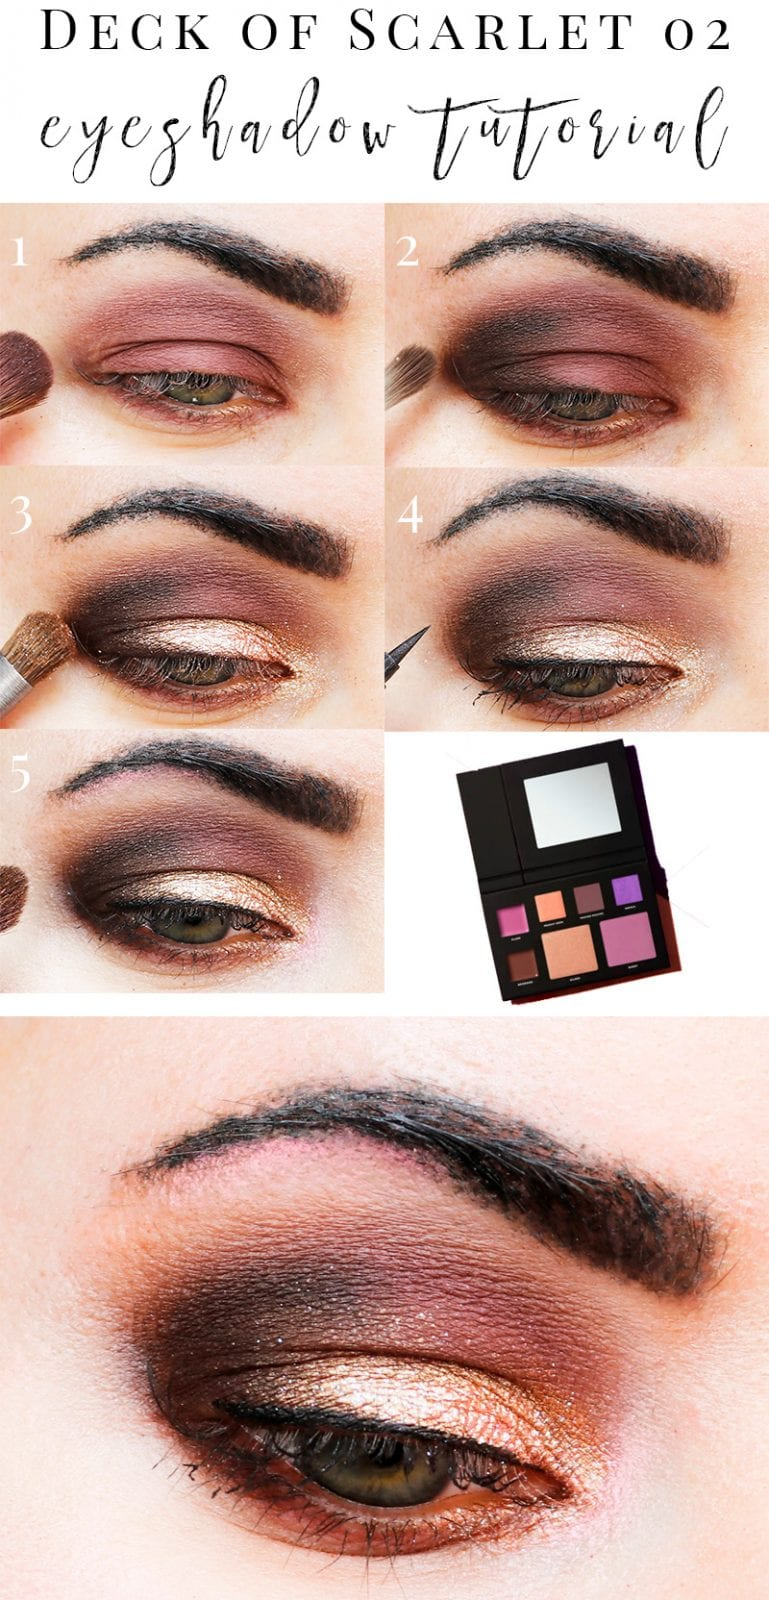 Deck of Scarlet Mauve Tutorial. Courtney used the Deck of Scarlet 02 Babsbeauty purple palette for this tutorial. Making Mauves is a sexy medium mauve matte. Great for a film noir look on its own or as a crease color.